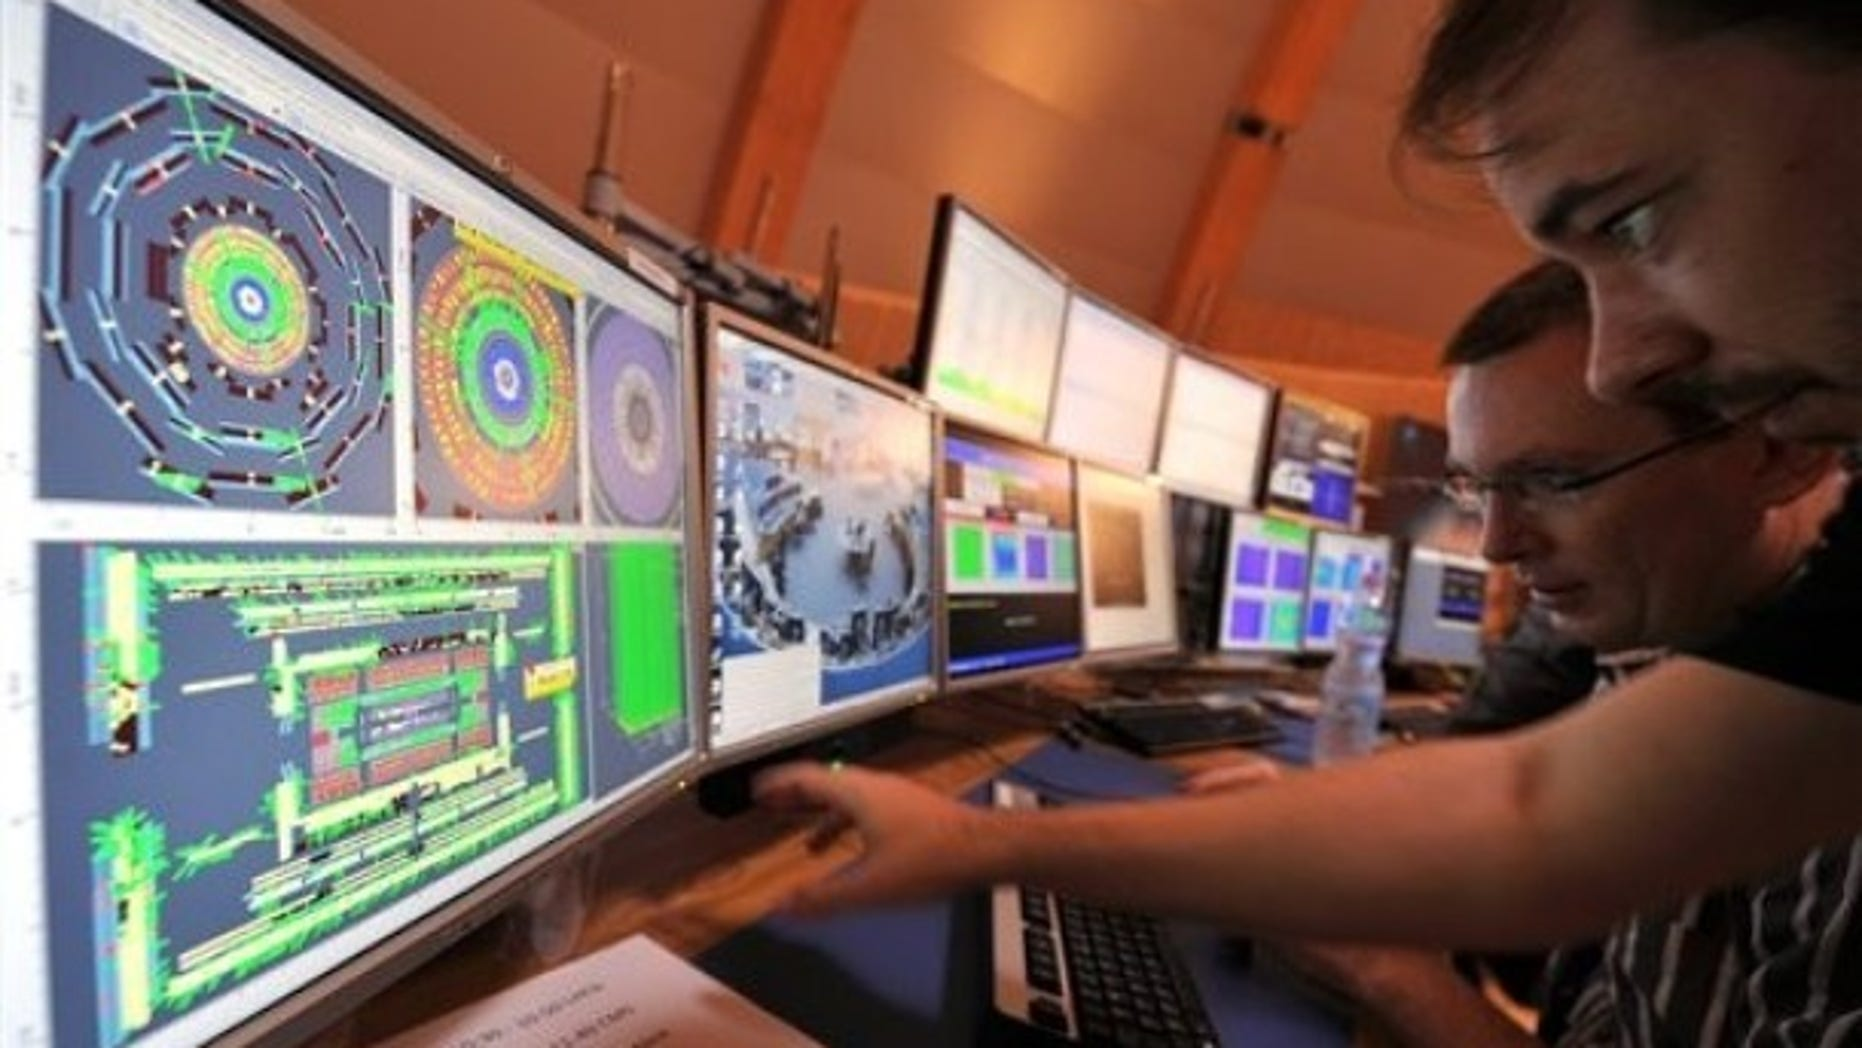 European Center for Nuclear Research (CERN) scientists control computer screens showing traces on Atlas experiment of the first protons injected in the Large Hadron Collider (LHC) during its switch on operation in CERN's control room, near Geneva, Switzerland.